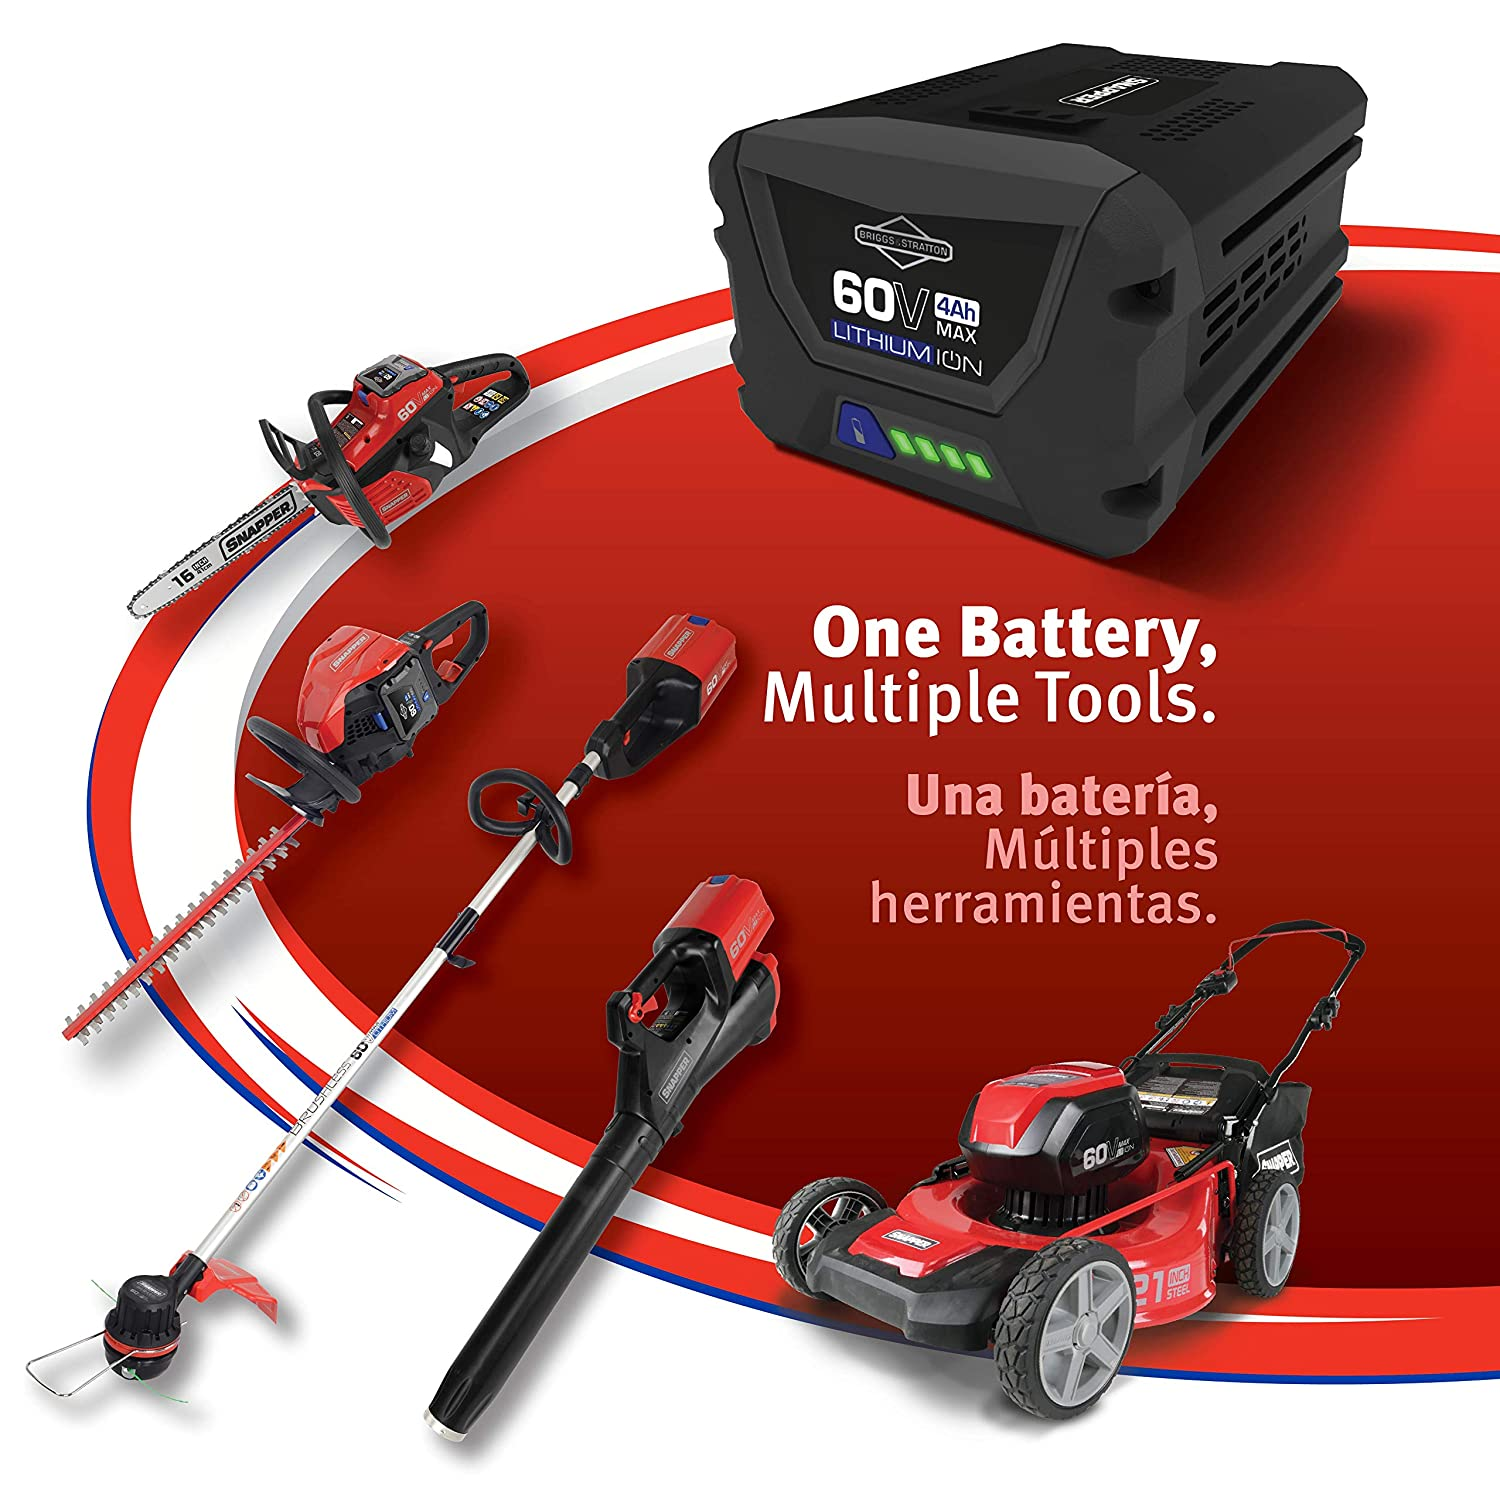 Snapper 60V Charger Max Li-ion Battery